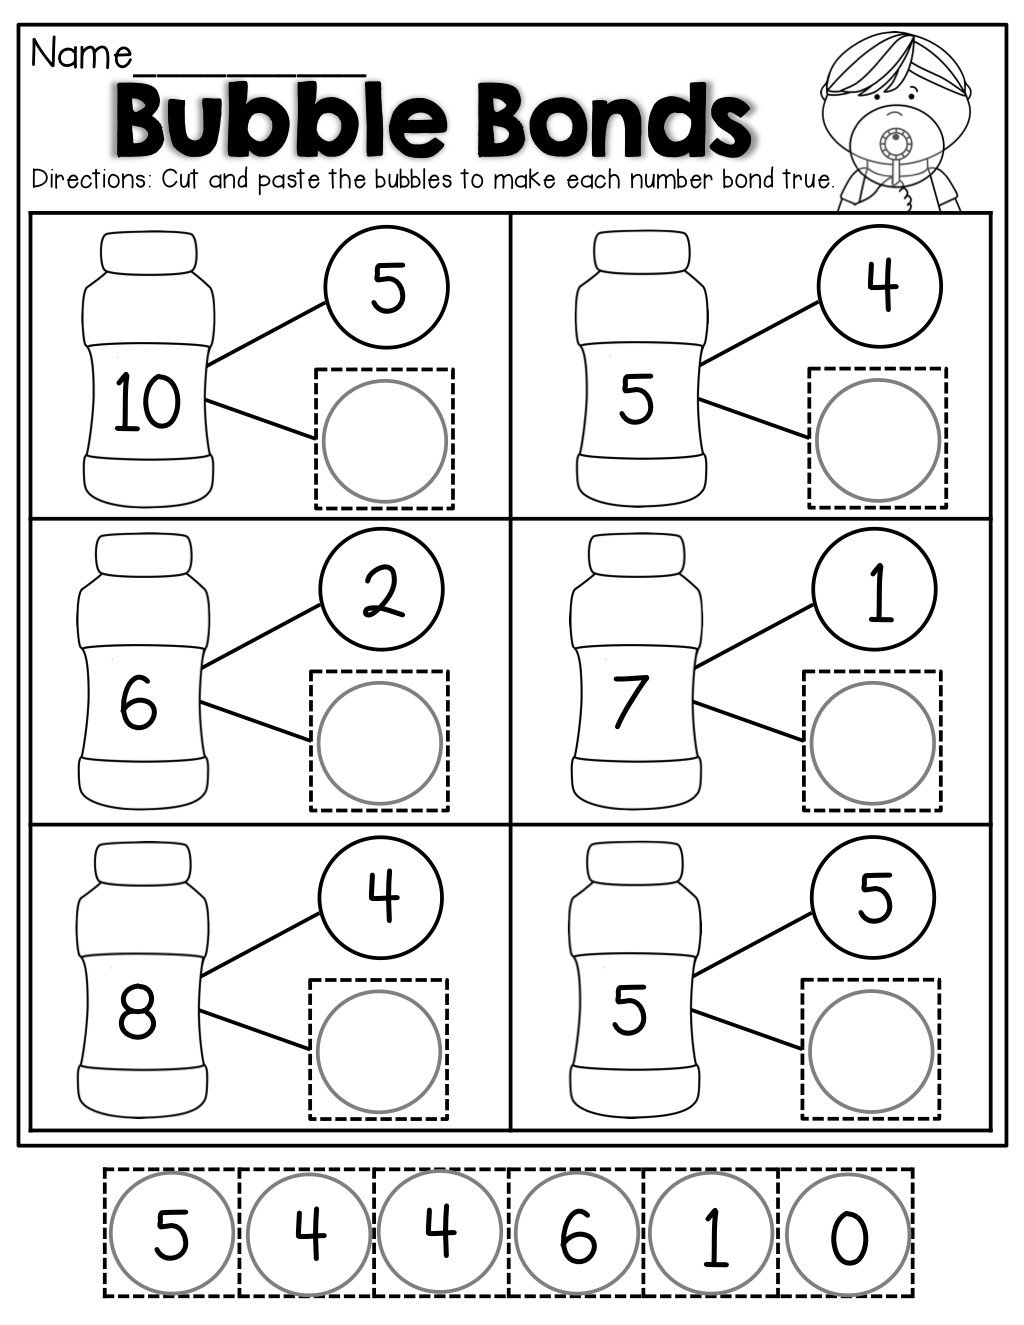 Number Bubble Bonds (Cut And Paste) | Kindergarten Activities | Math | Free Printable Number Bonds Worksheets For Kindergarten